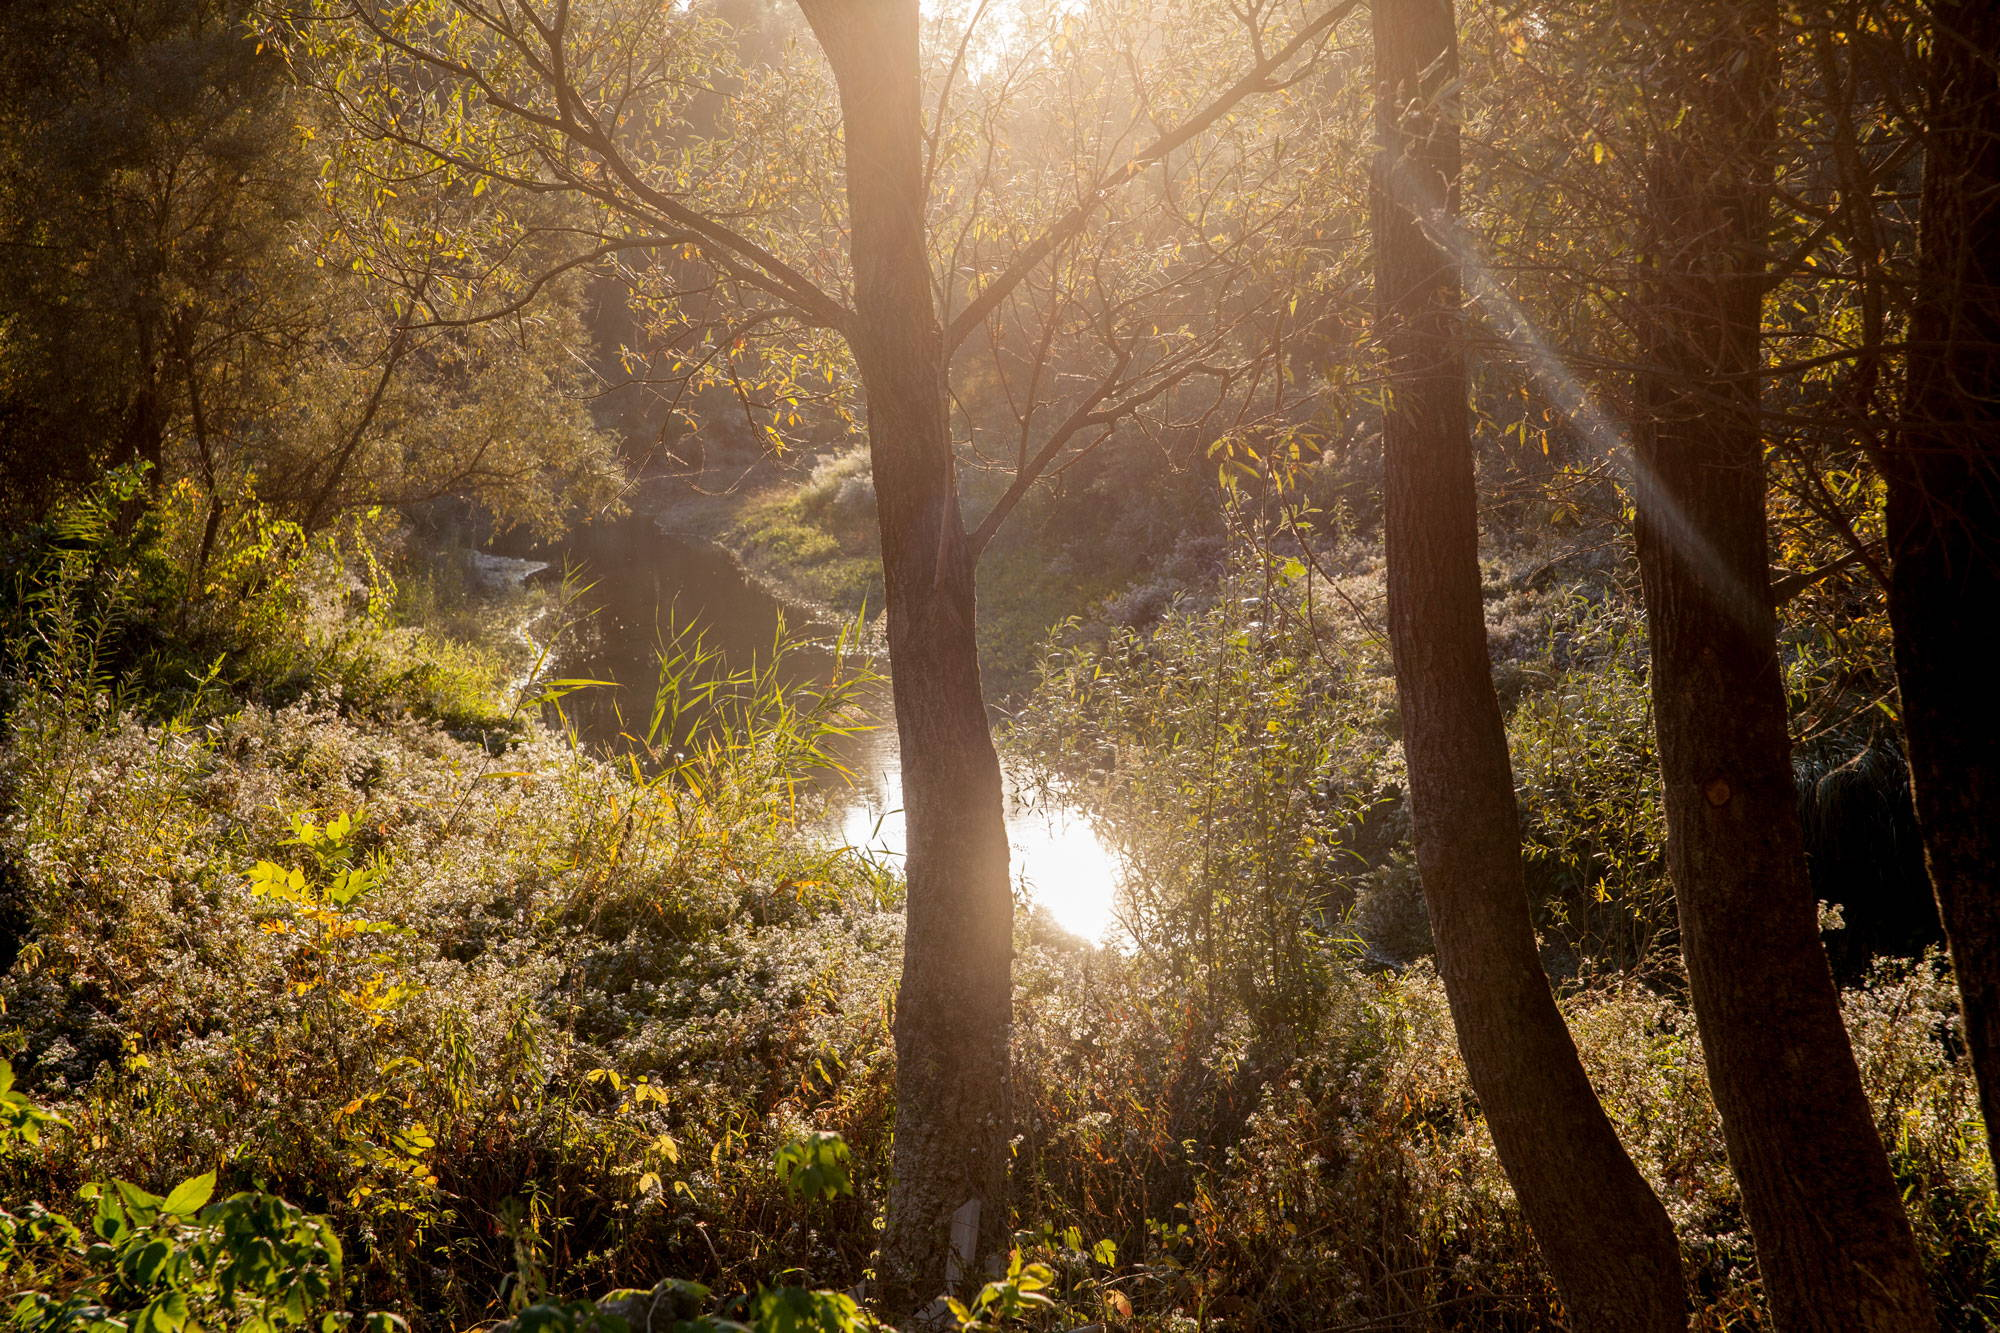 A lush floodplain forest with thrive undergrowth and a stream running through at golden hour